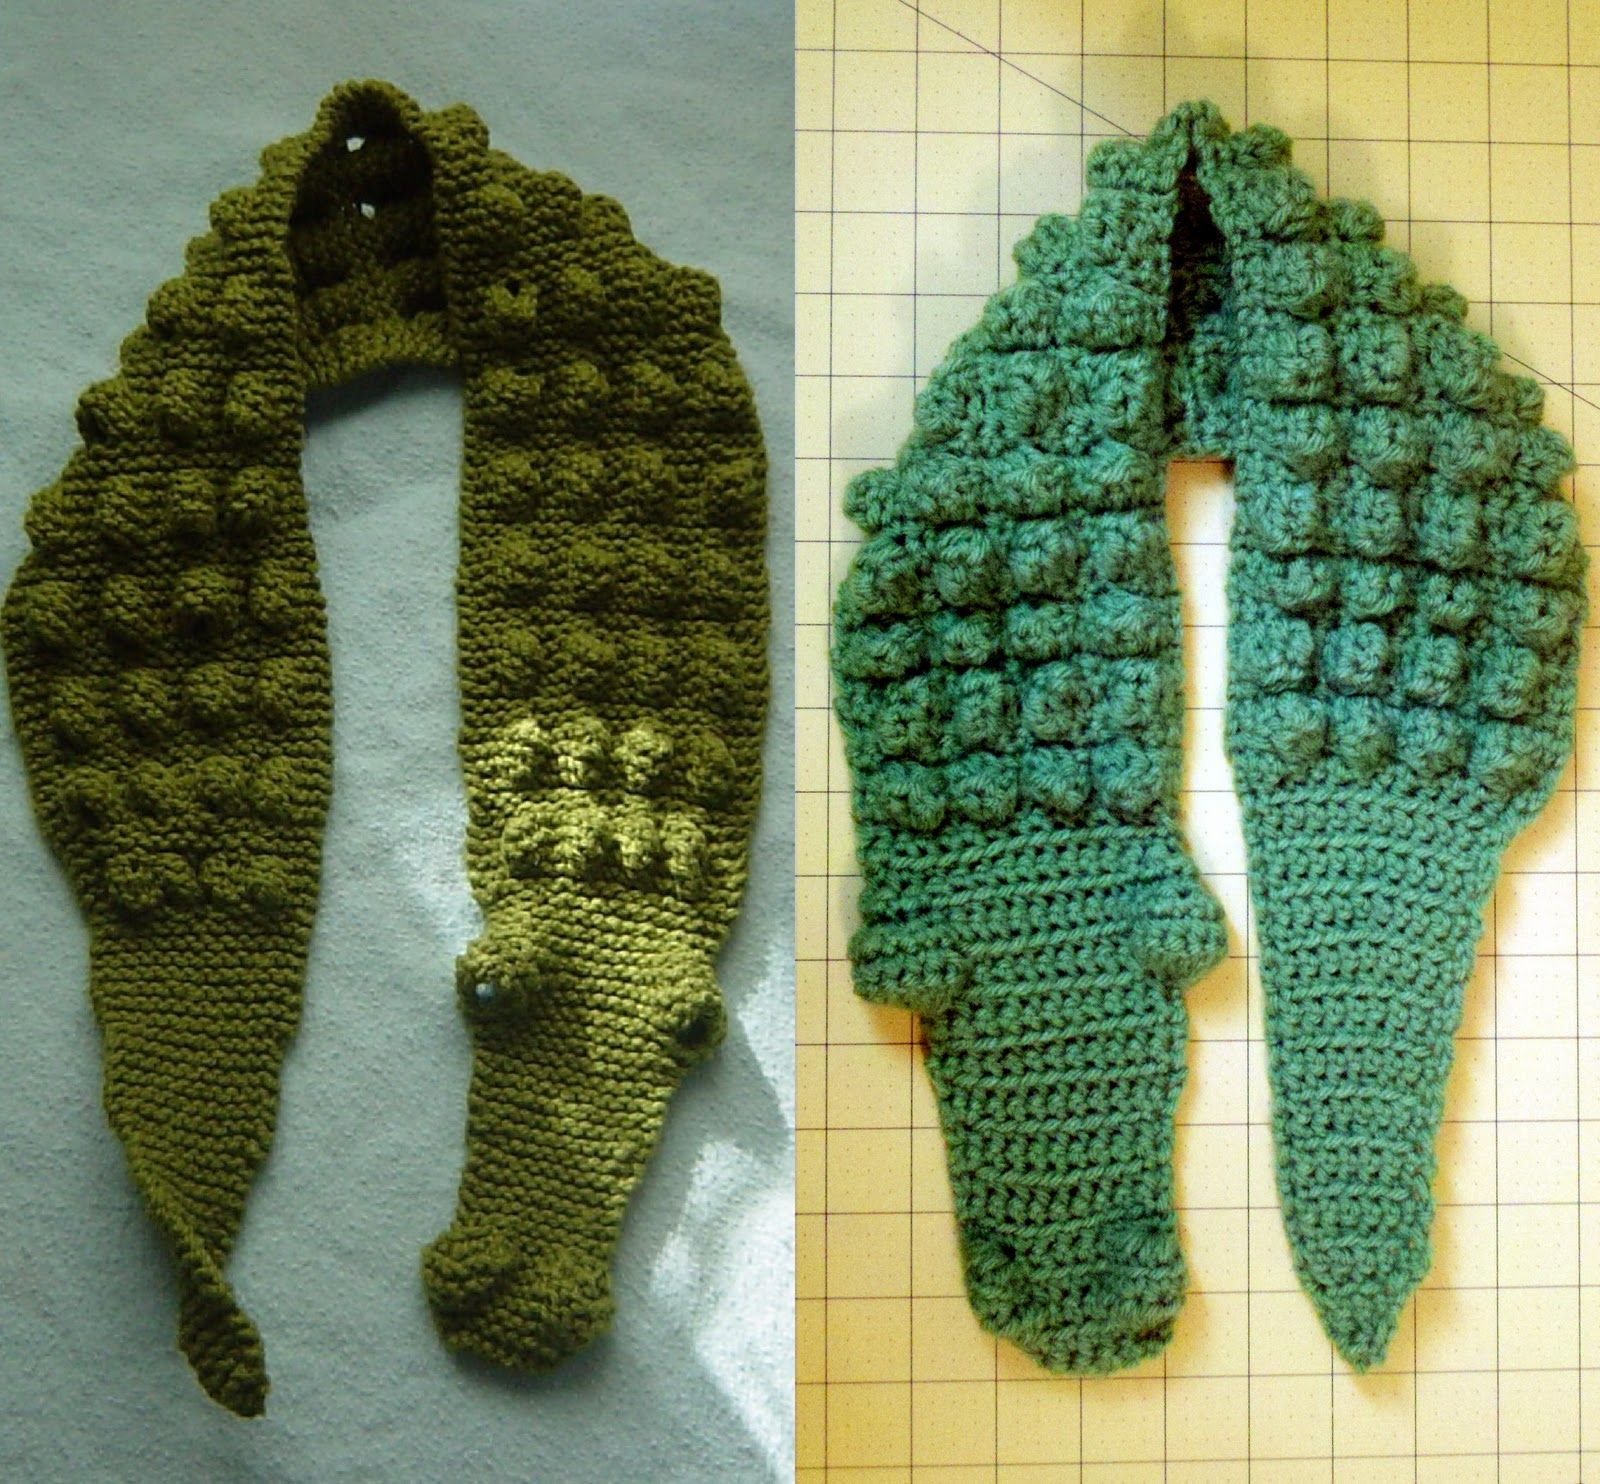 Crochet Animal Scarves Patterns Youll Love Video Tutorial Ruth